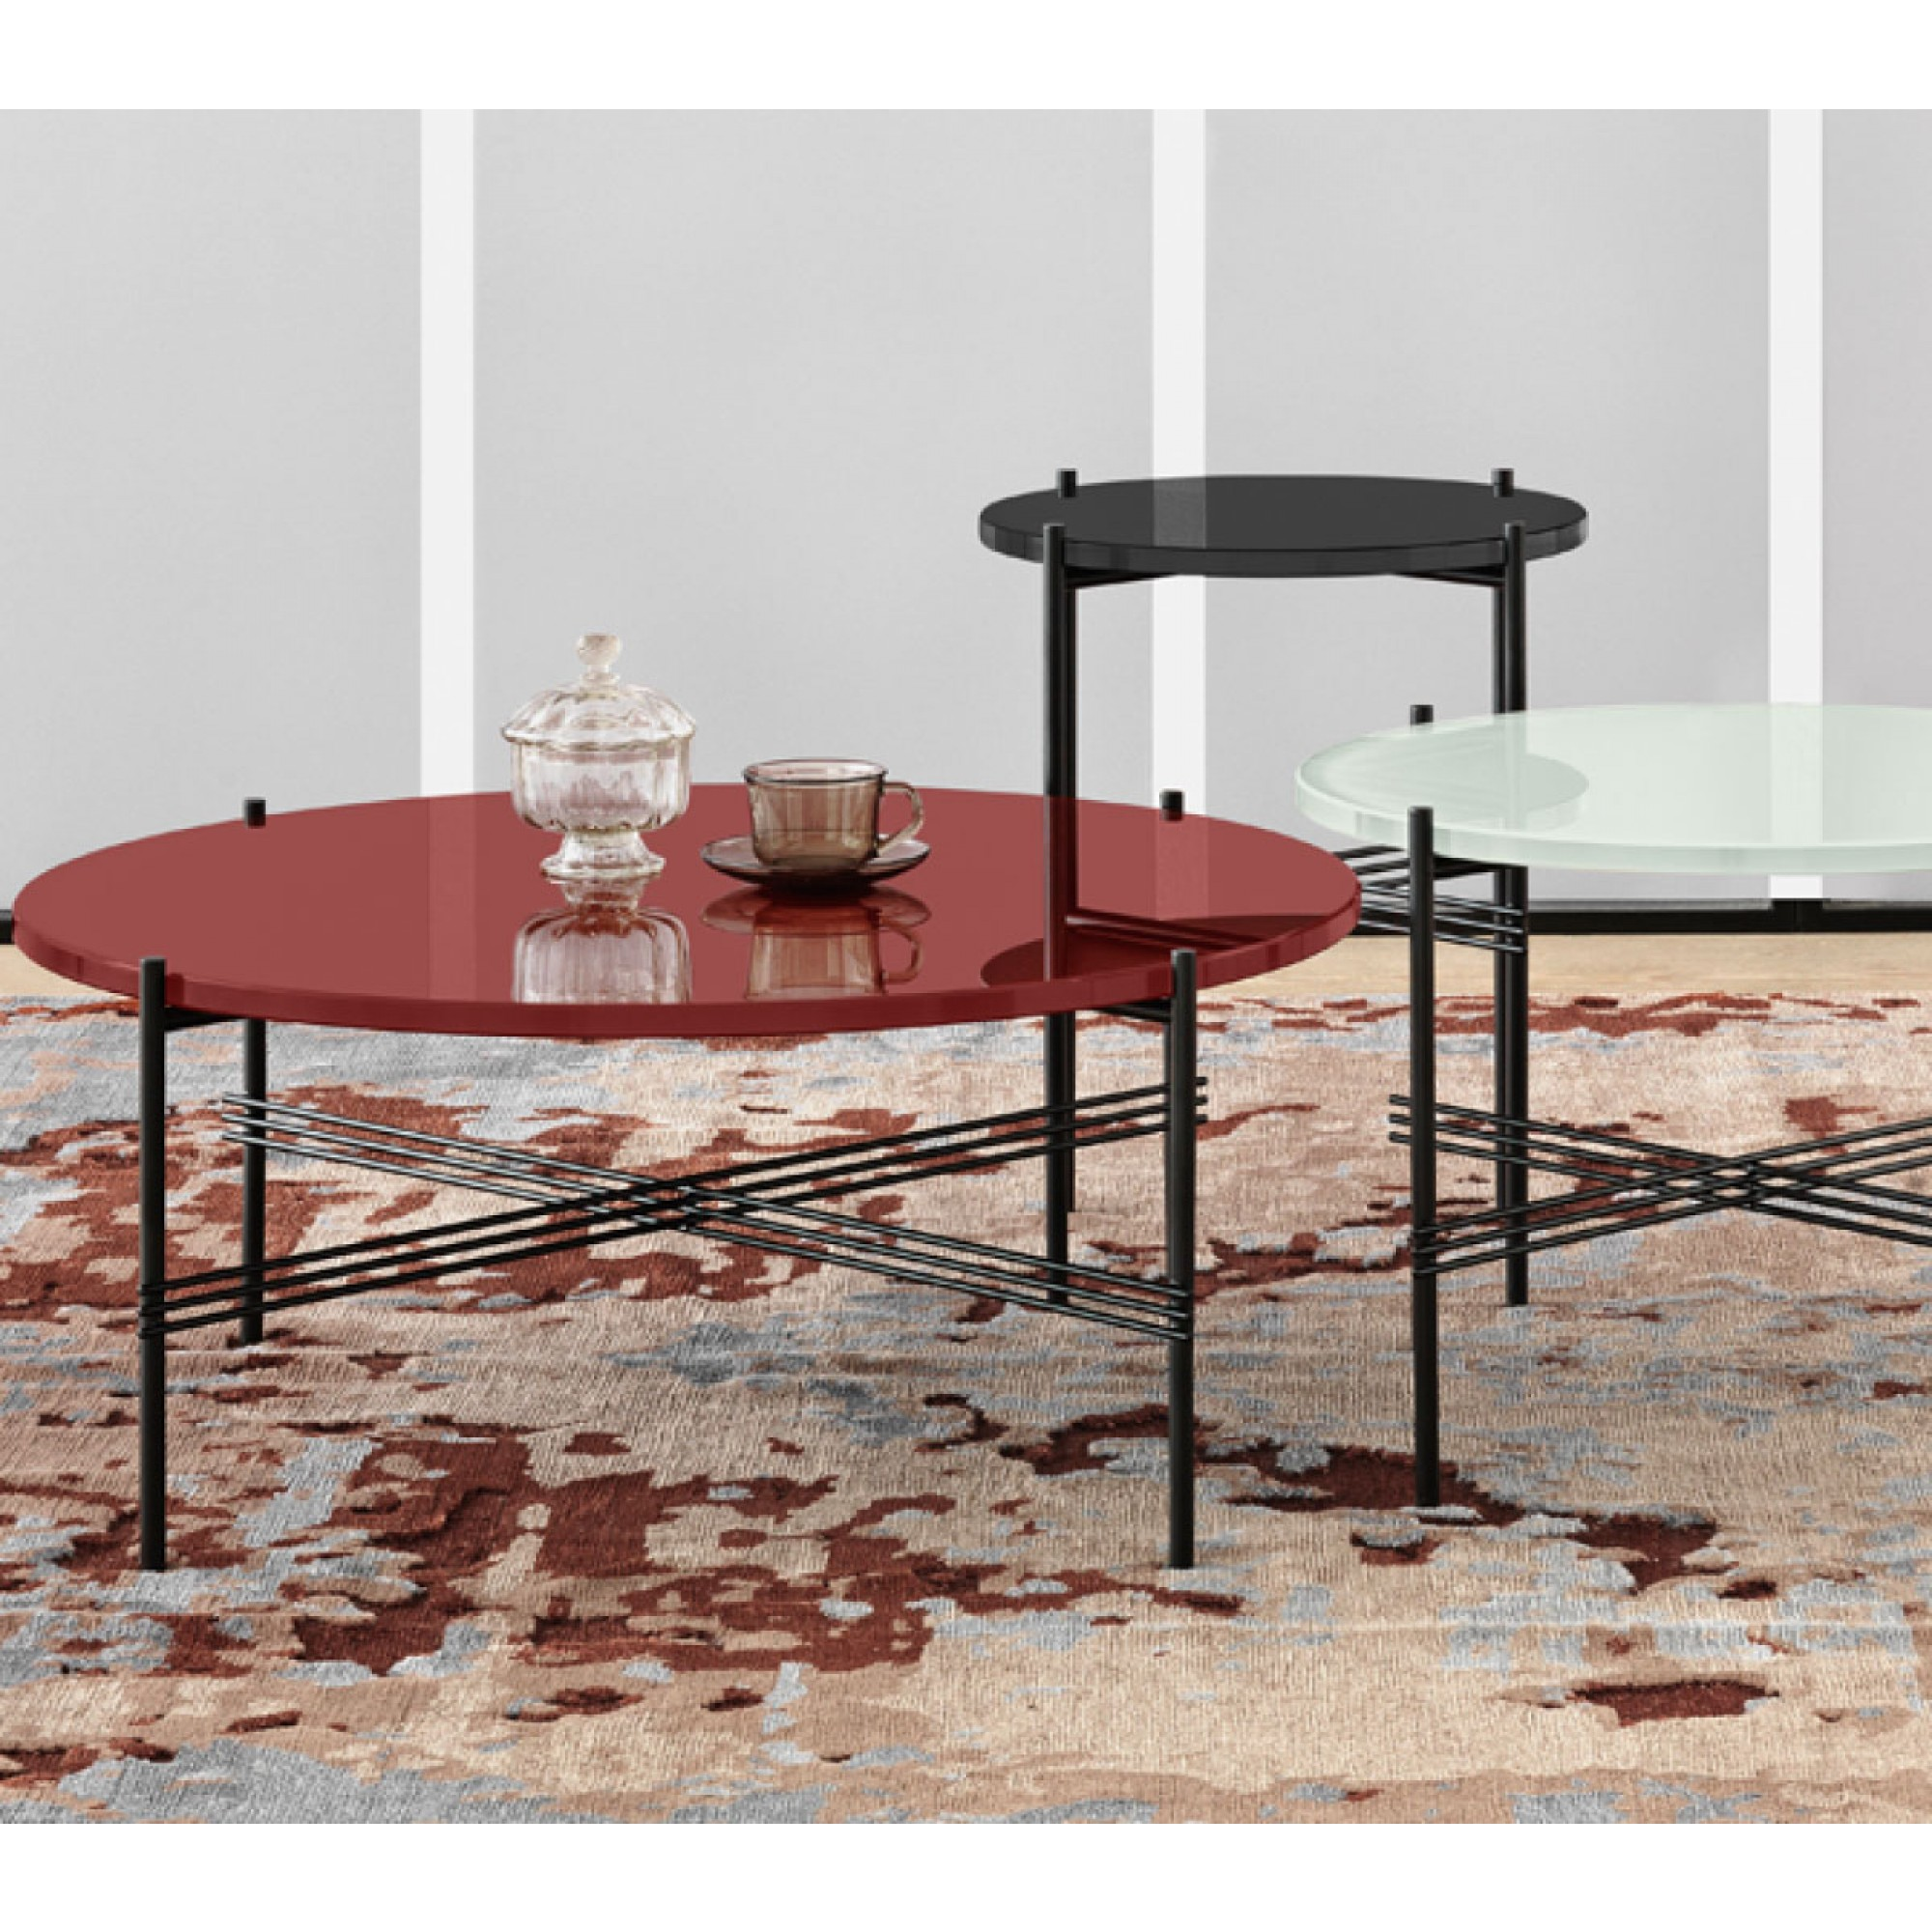 Design Table By Gubi Luxury Interior Design Online Shop